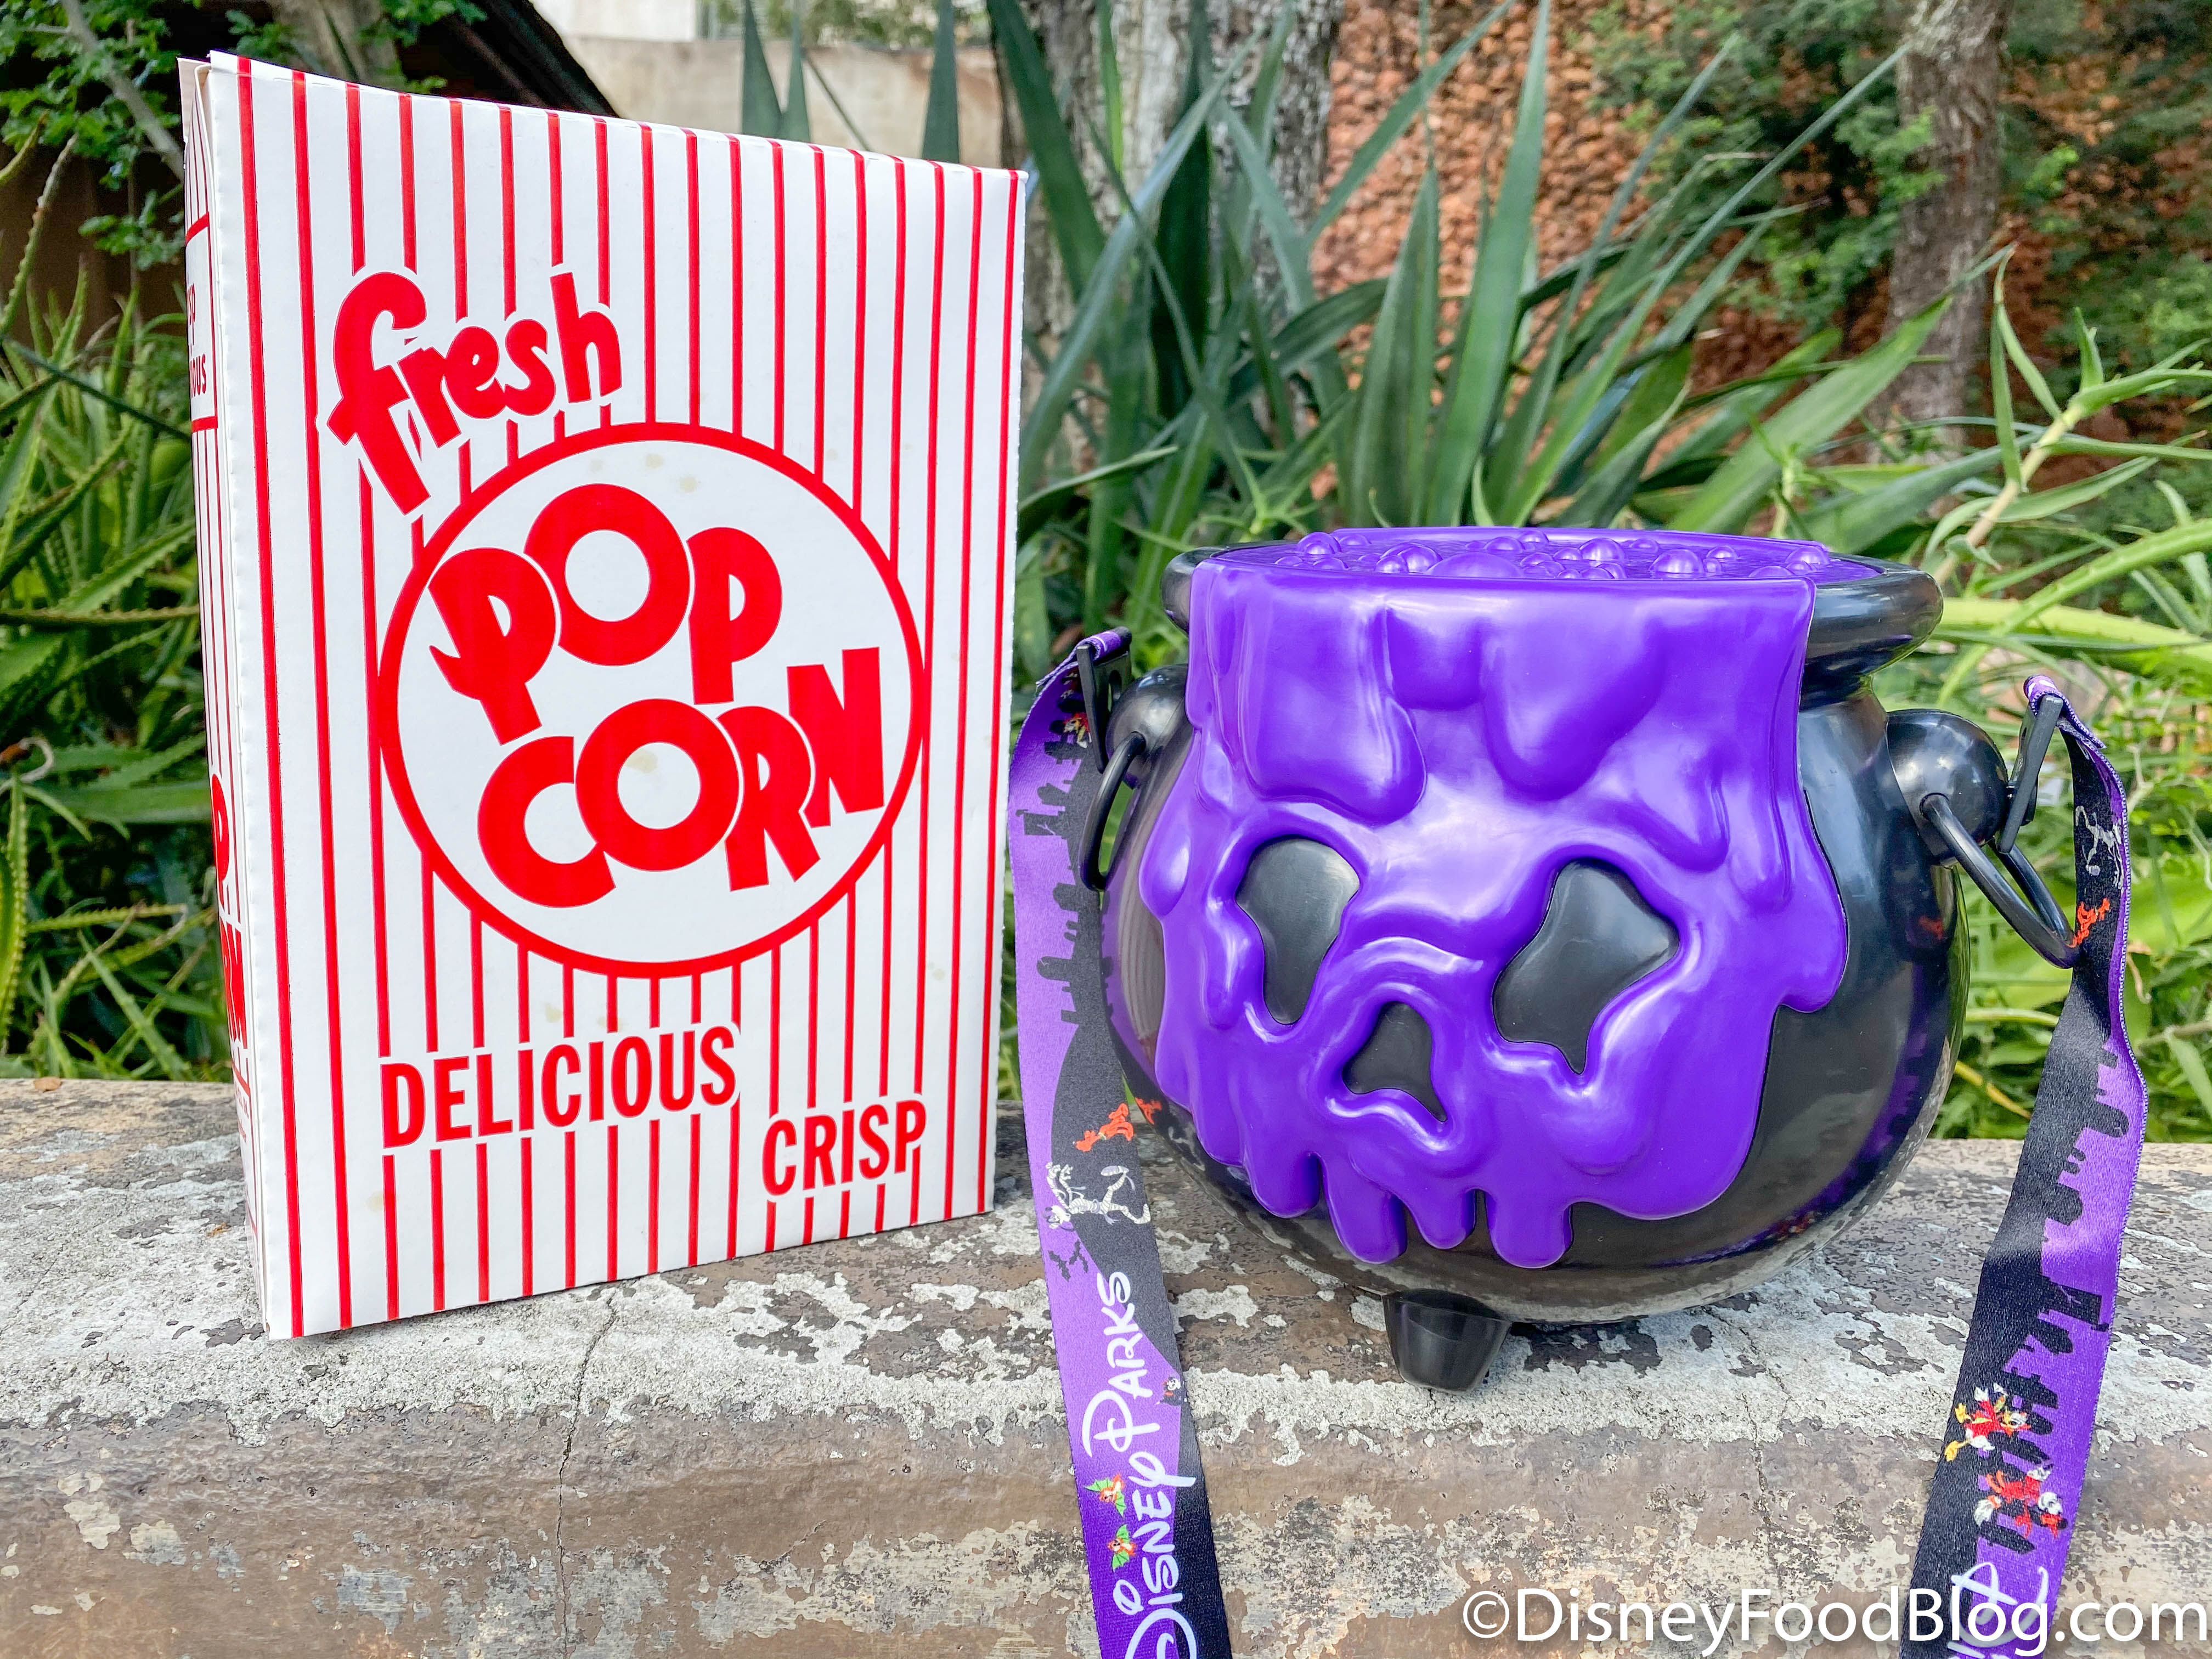 What S New At Disney S Animal Kingdom And Disney S Animal Kingdom Lodge Halloween Popcorn Buckets An Iconic Snack In An Unexpected Spot And More The Disney Food Blog